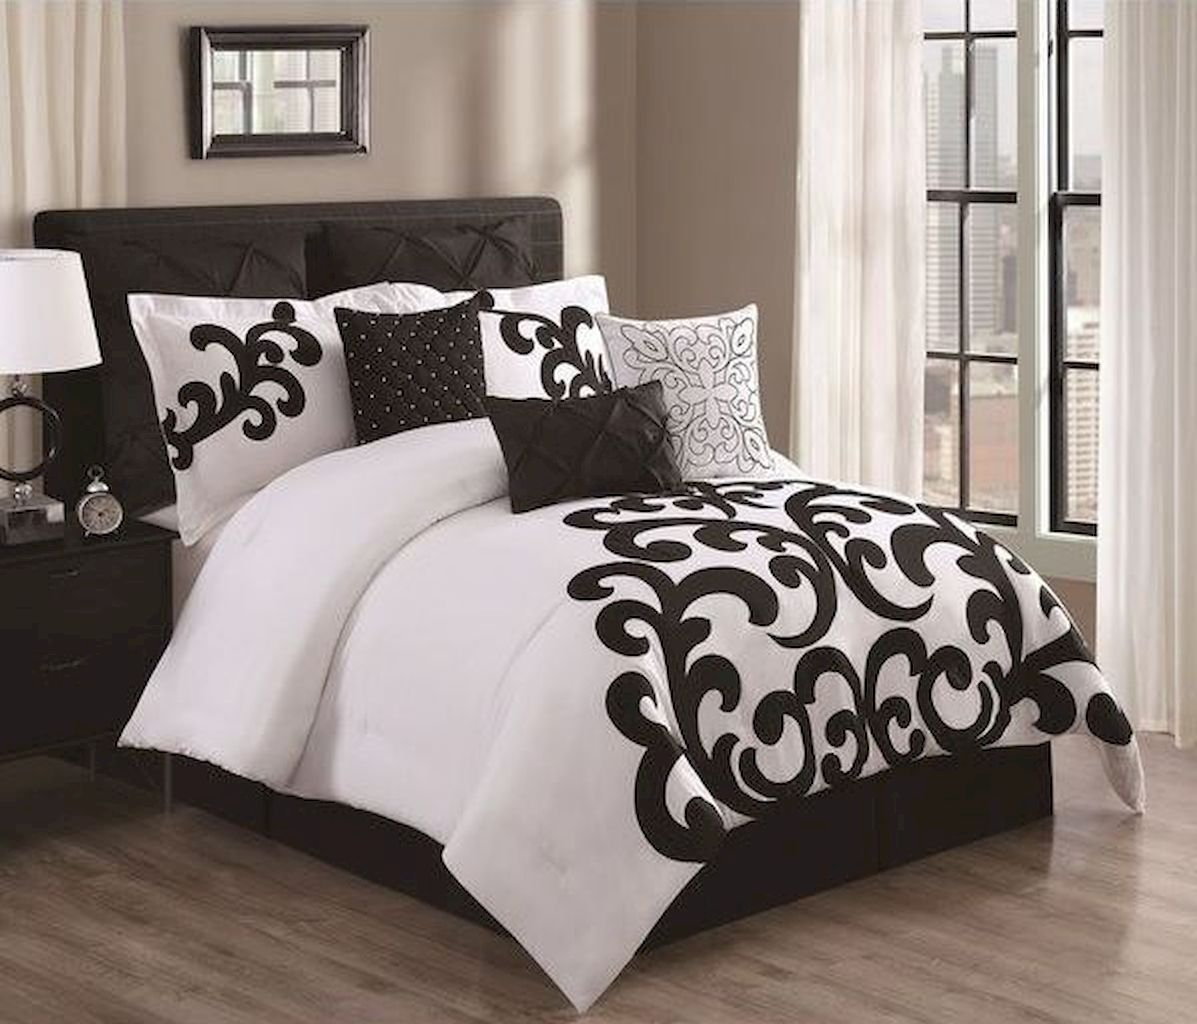 Black And White Bedding Sets For Your Dramatic Bedroom Comforter